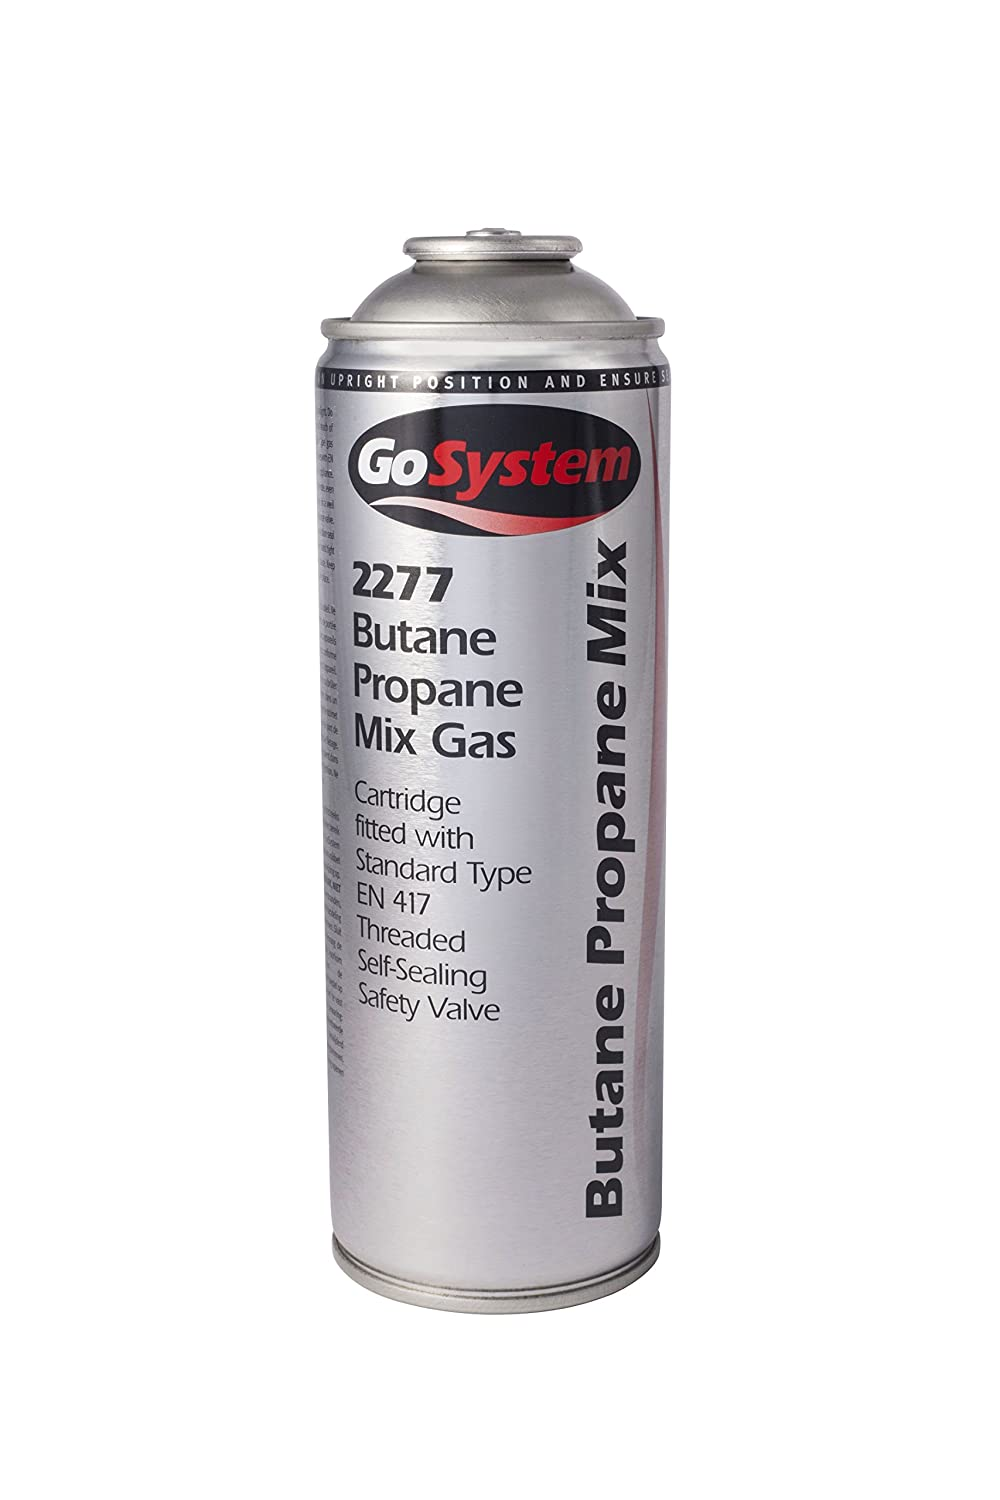 GoSystems Butane Propane 277G Mixed Gas Cartridge - Silver